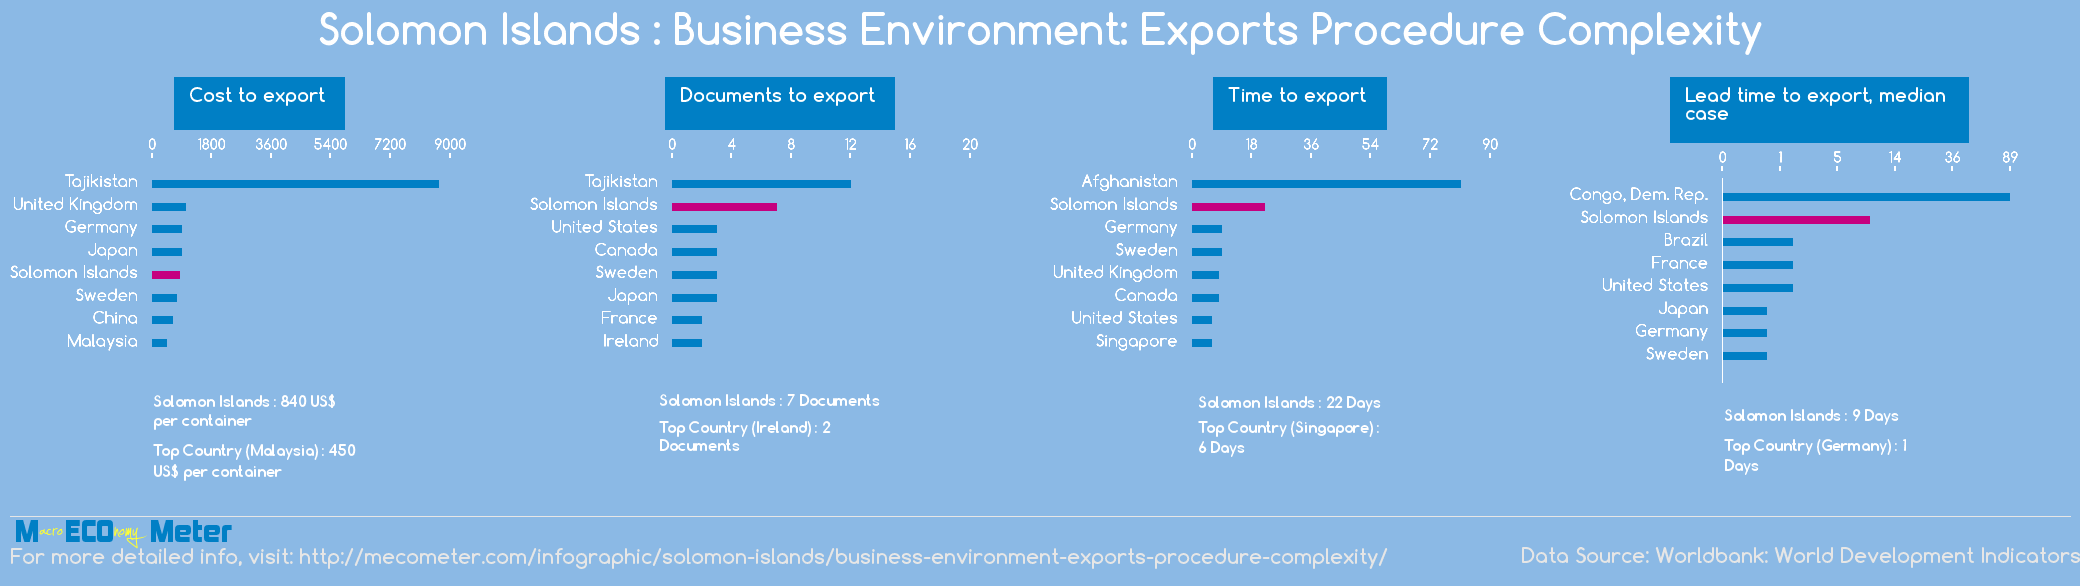 Solomon Islands : Business Environment: Exports Procedure Complexity